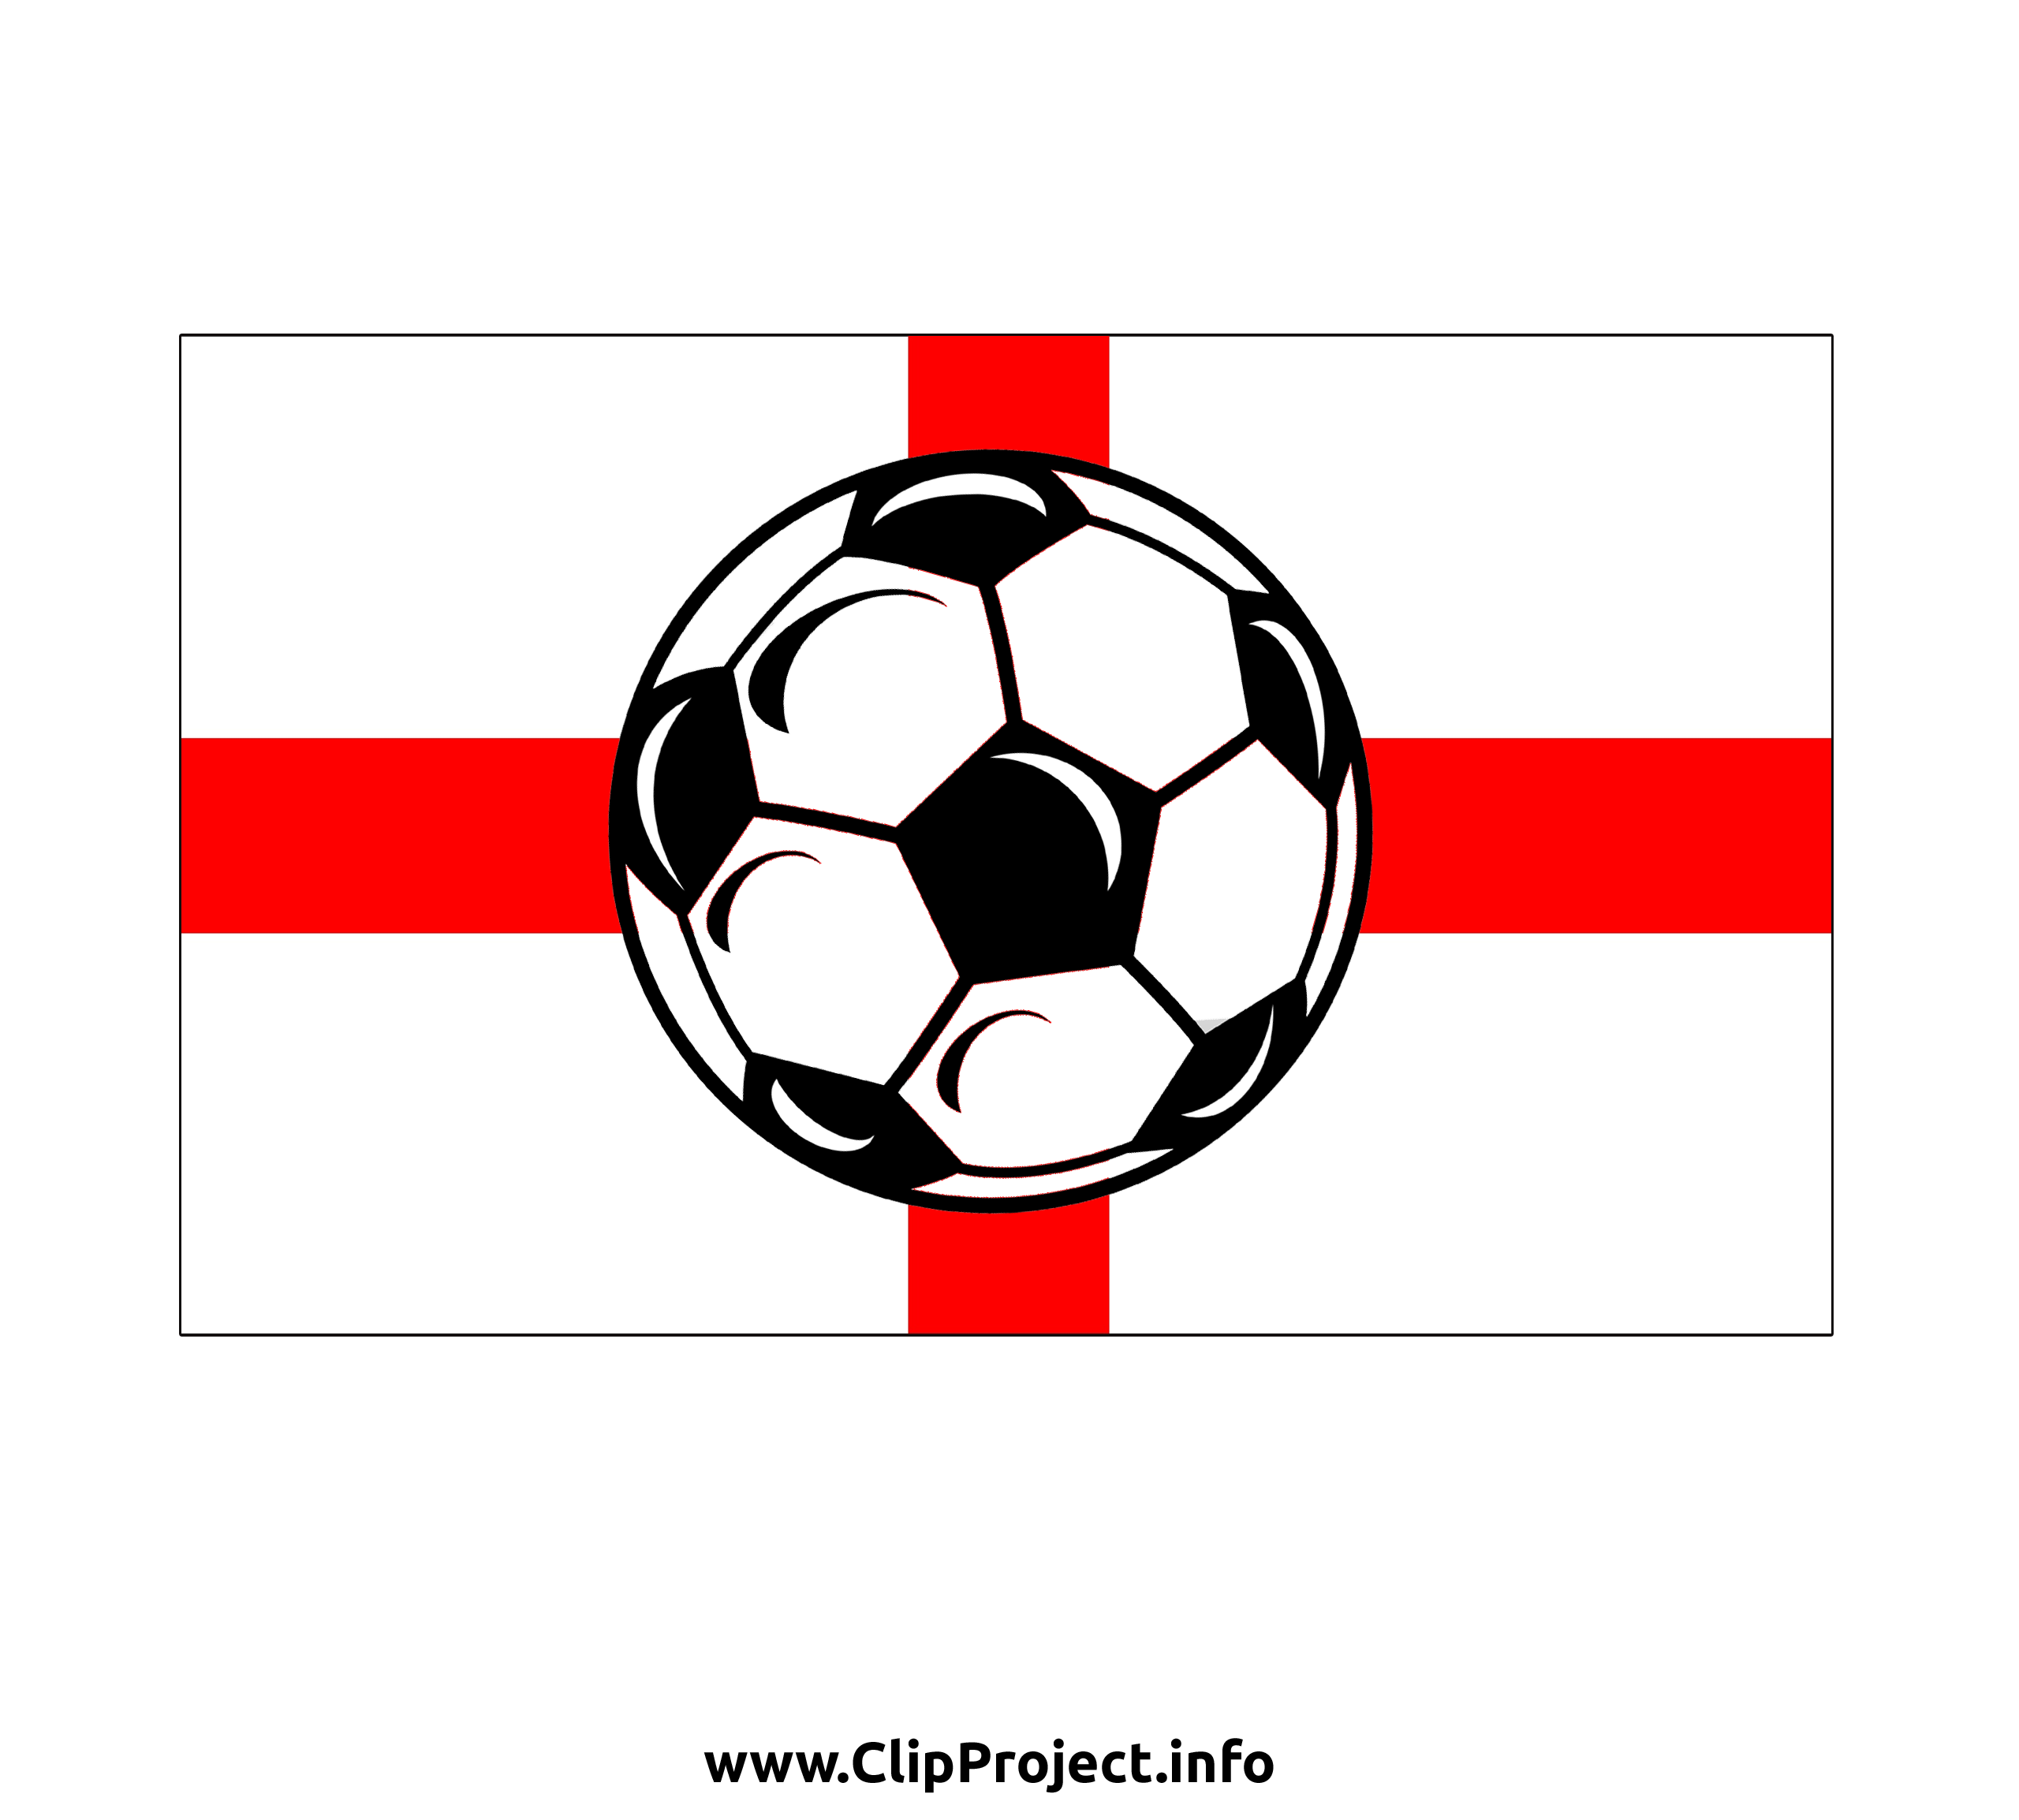 Football image - Angleterre cliparts gratuis